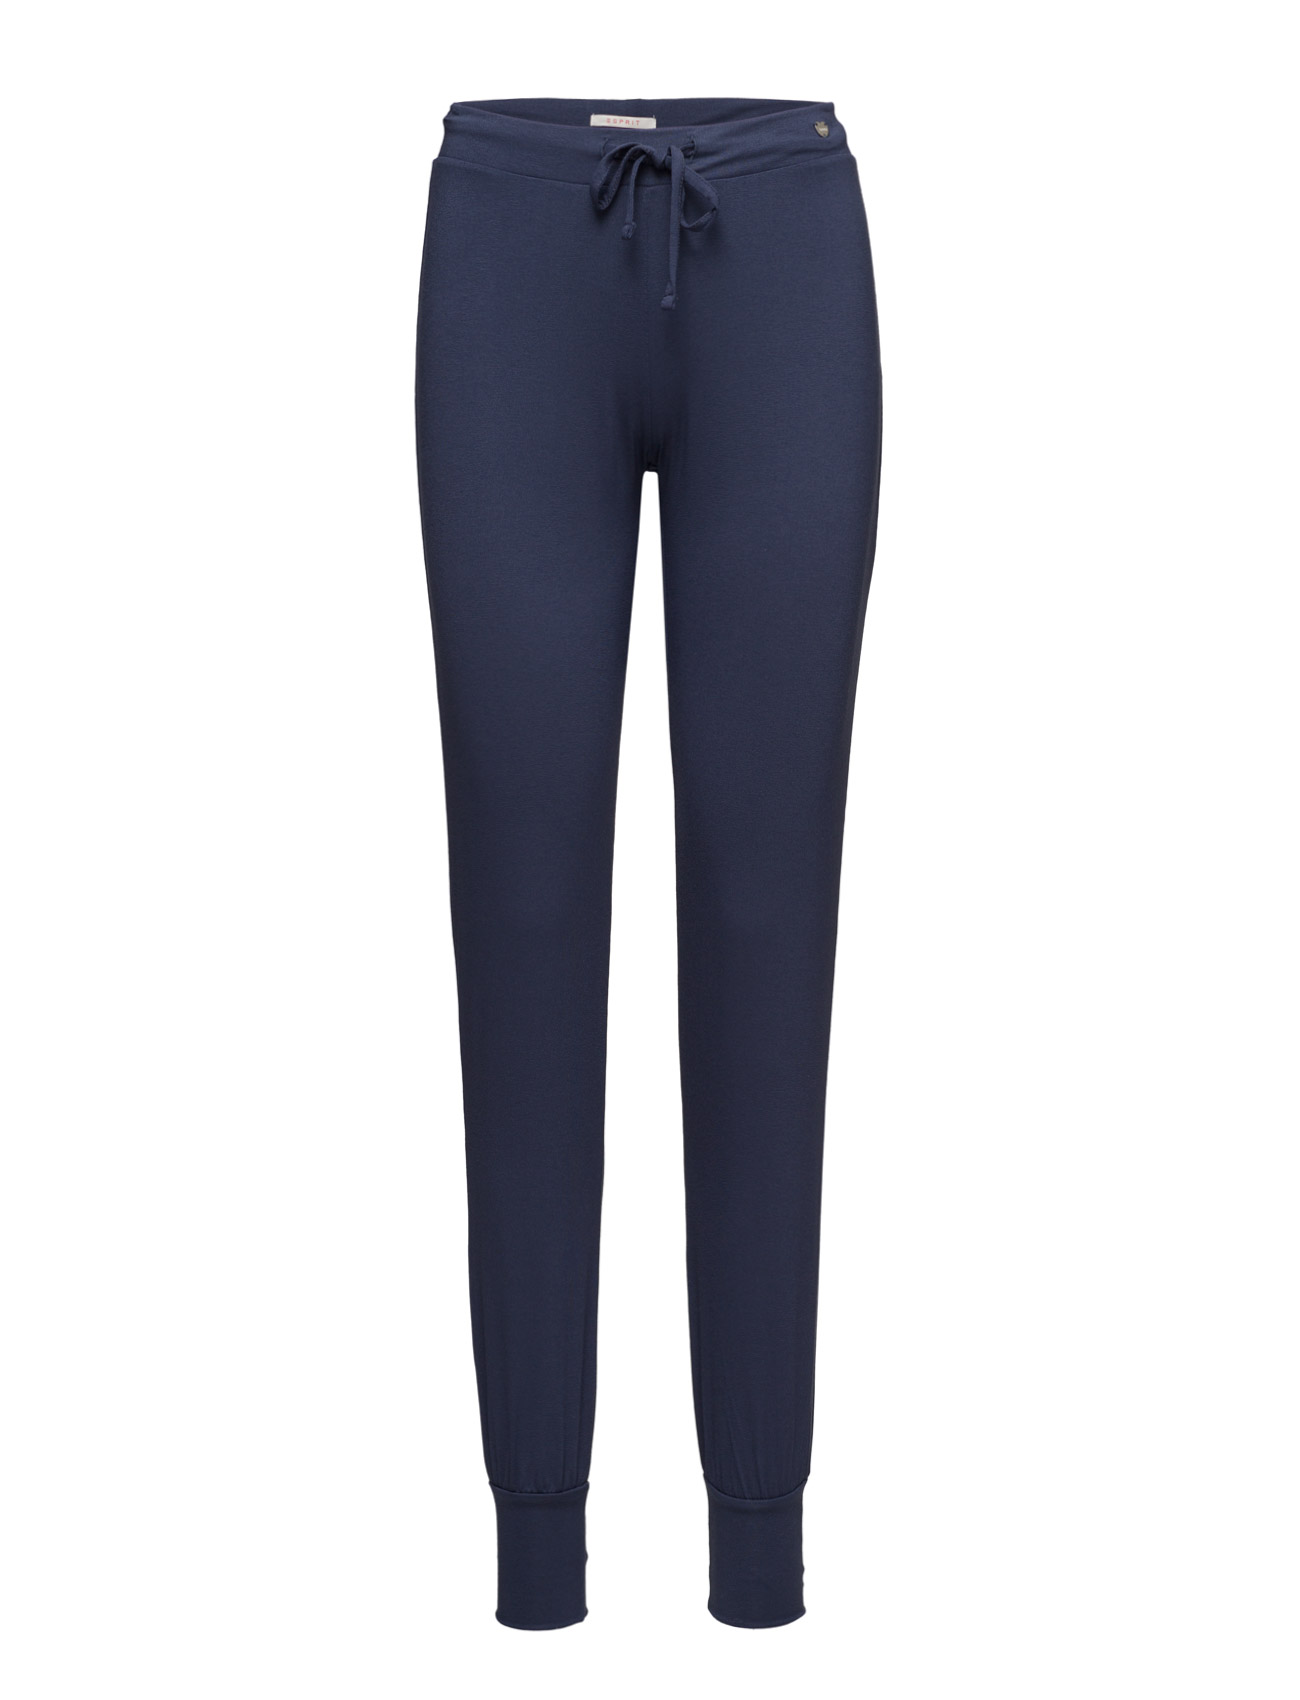 Nightpants Esprit Bodywear Women Loungewear til Damer i Navy blå